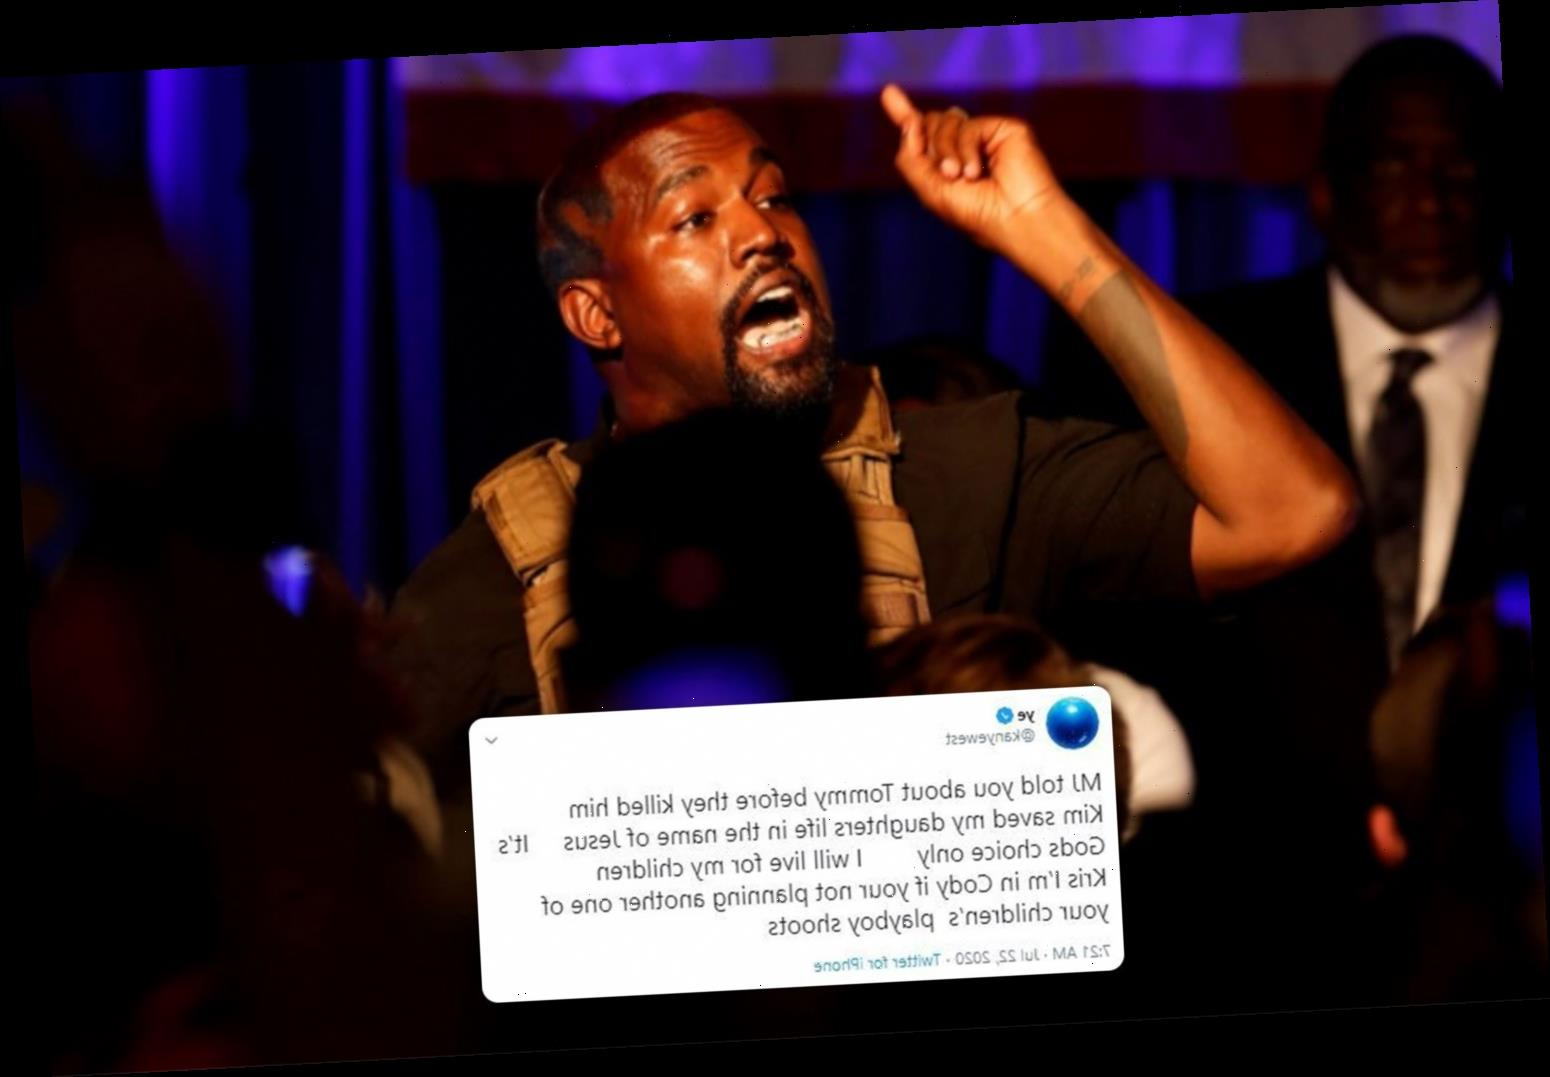 What did Kanye West say about Michael Jackson?